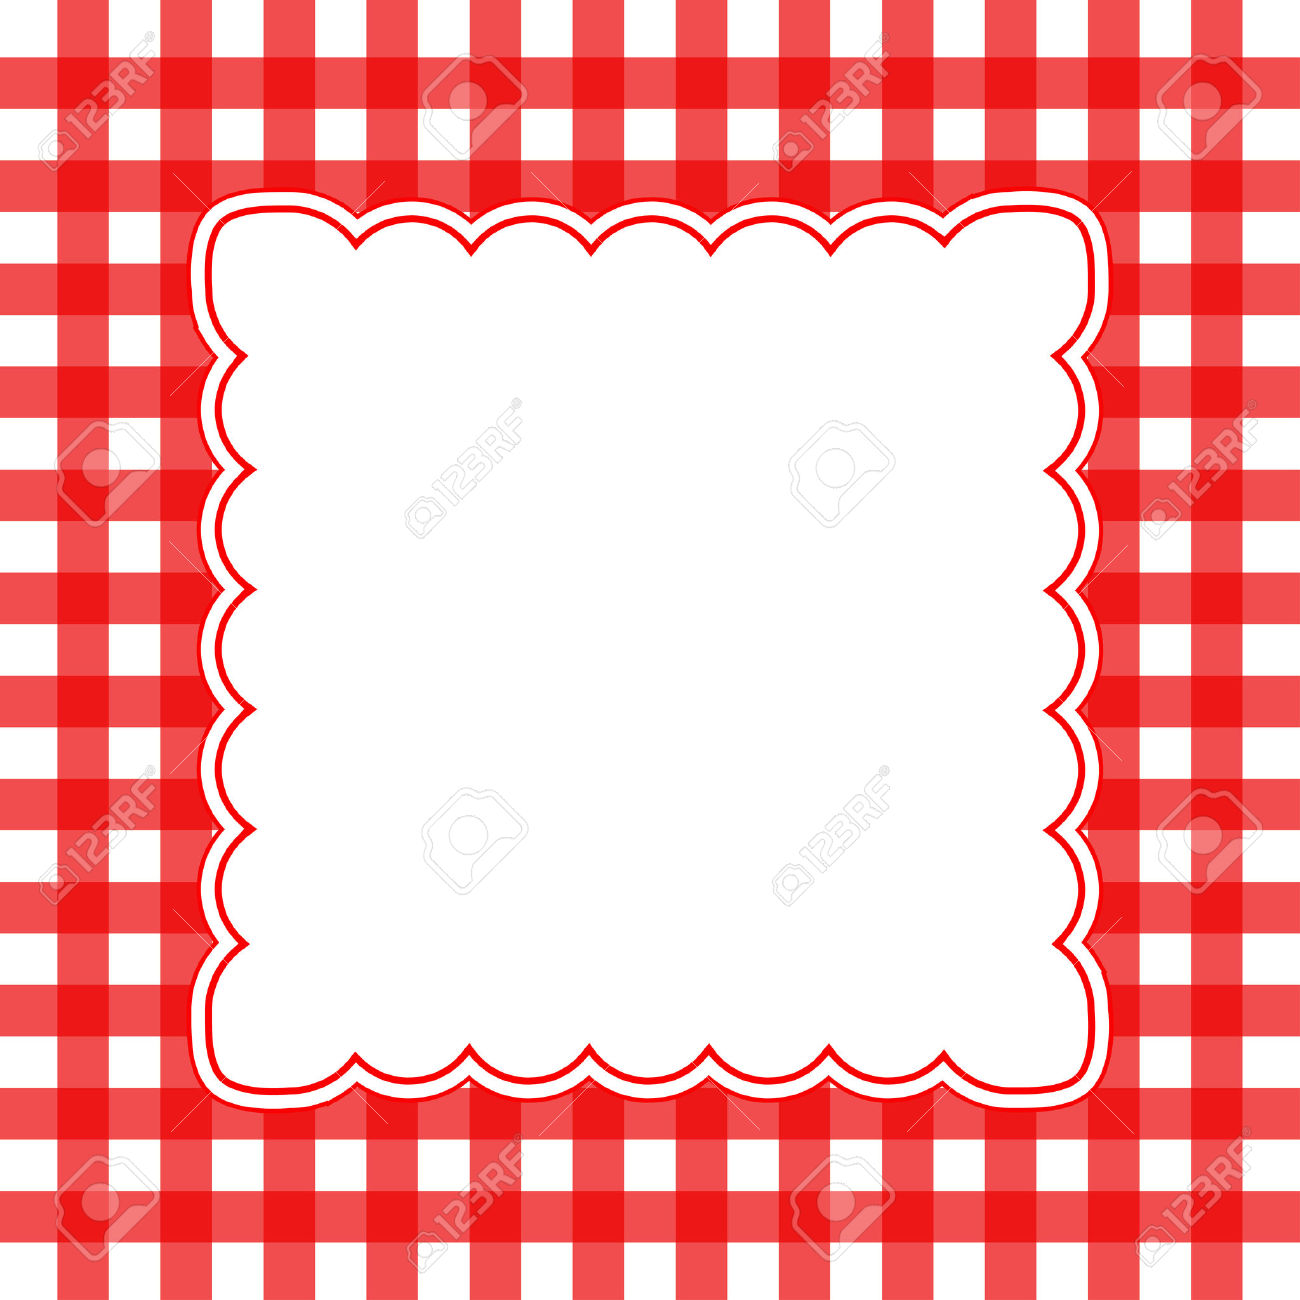 Red checkered border clipart free jpg transparent stock Checkered Border Clipart | Free download best Checkered ... jpg transparent stock